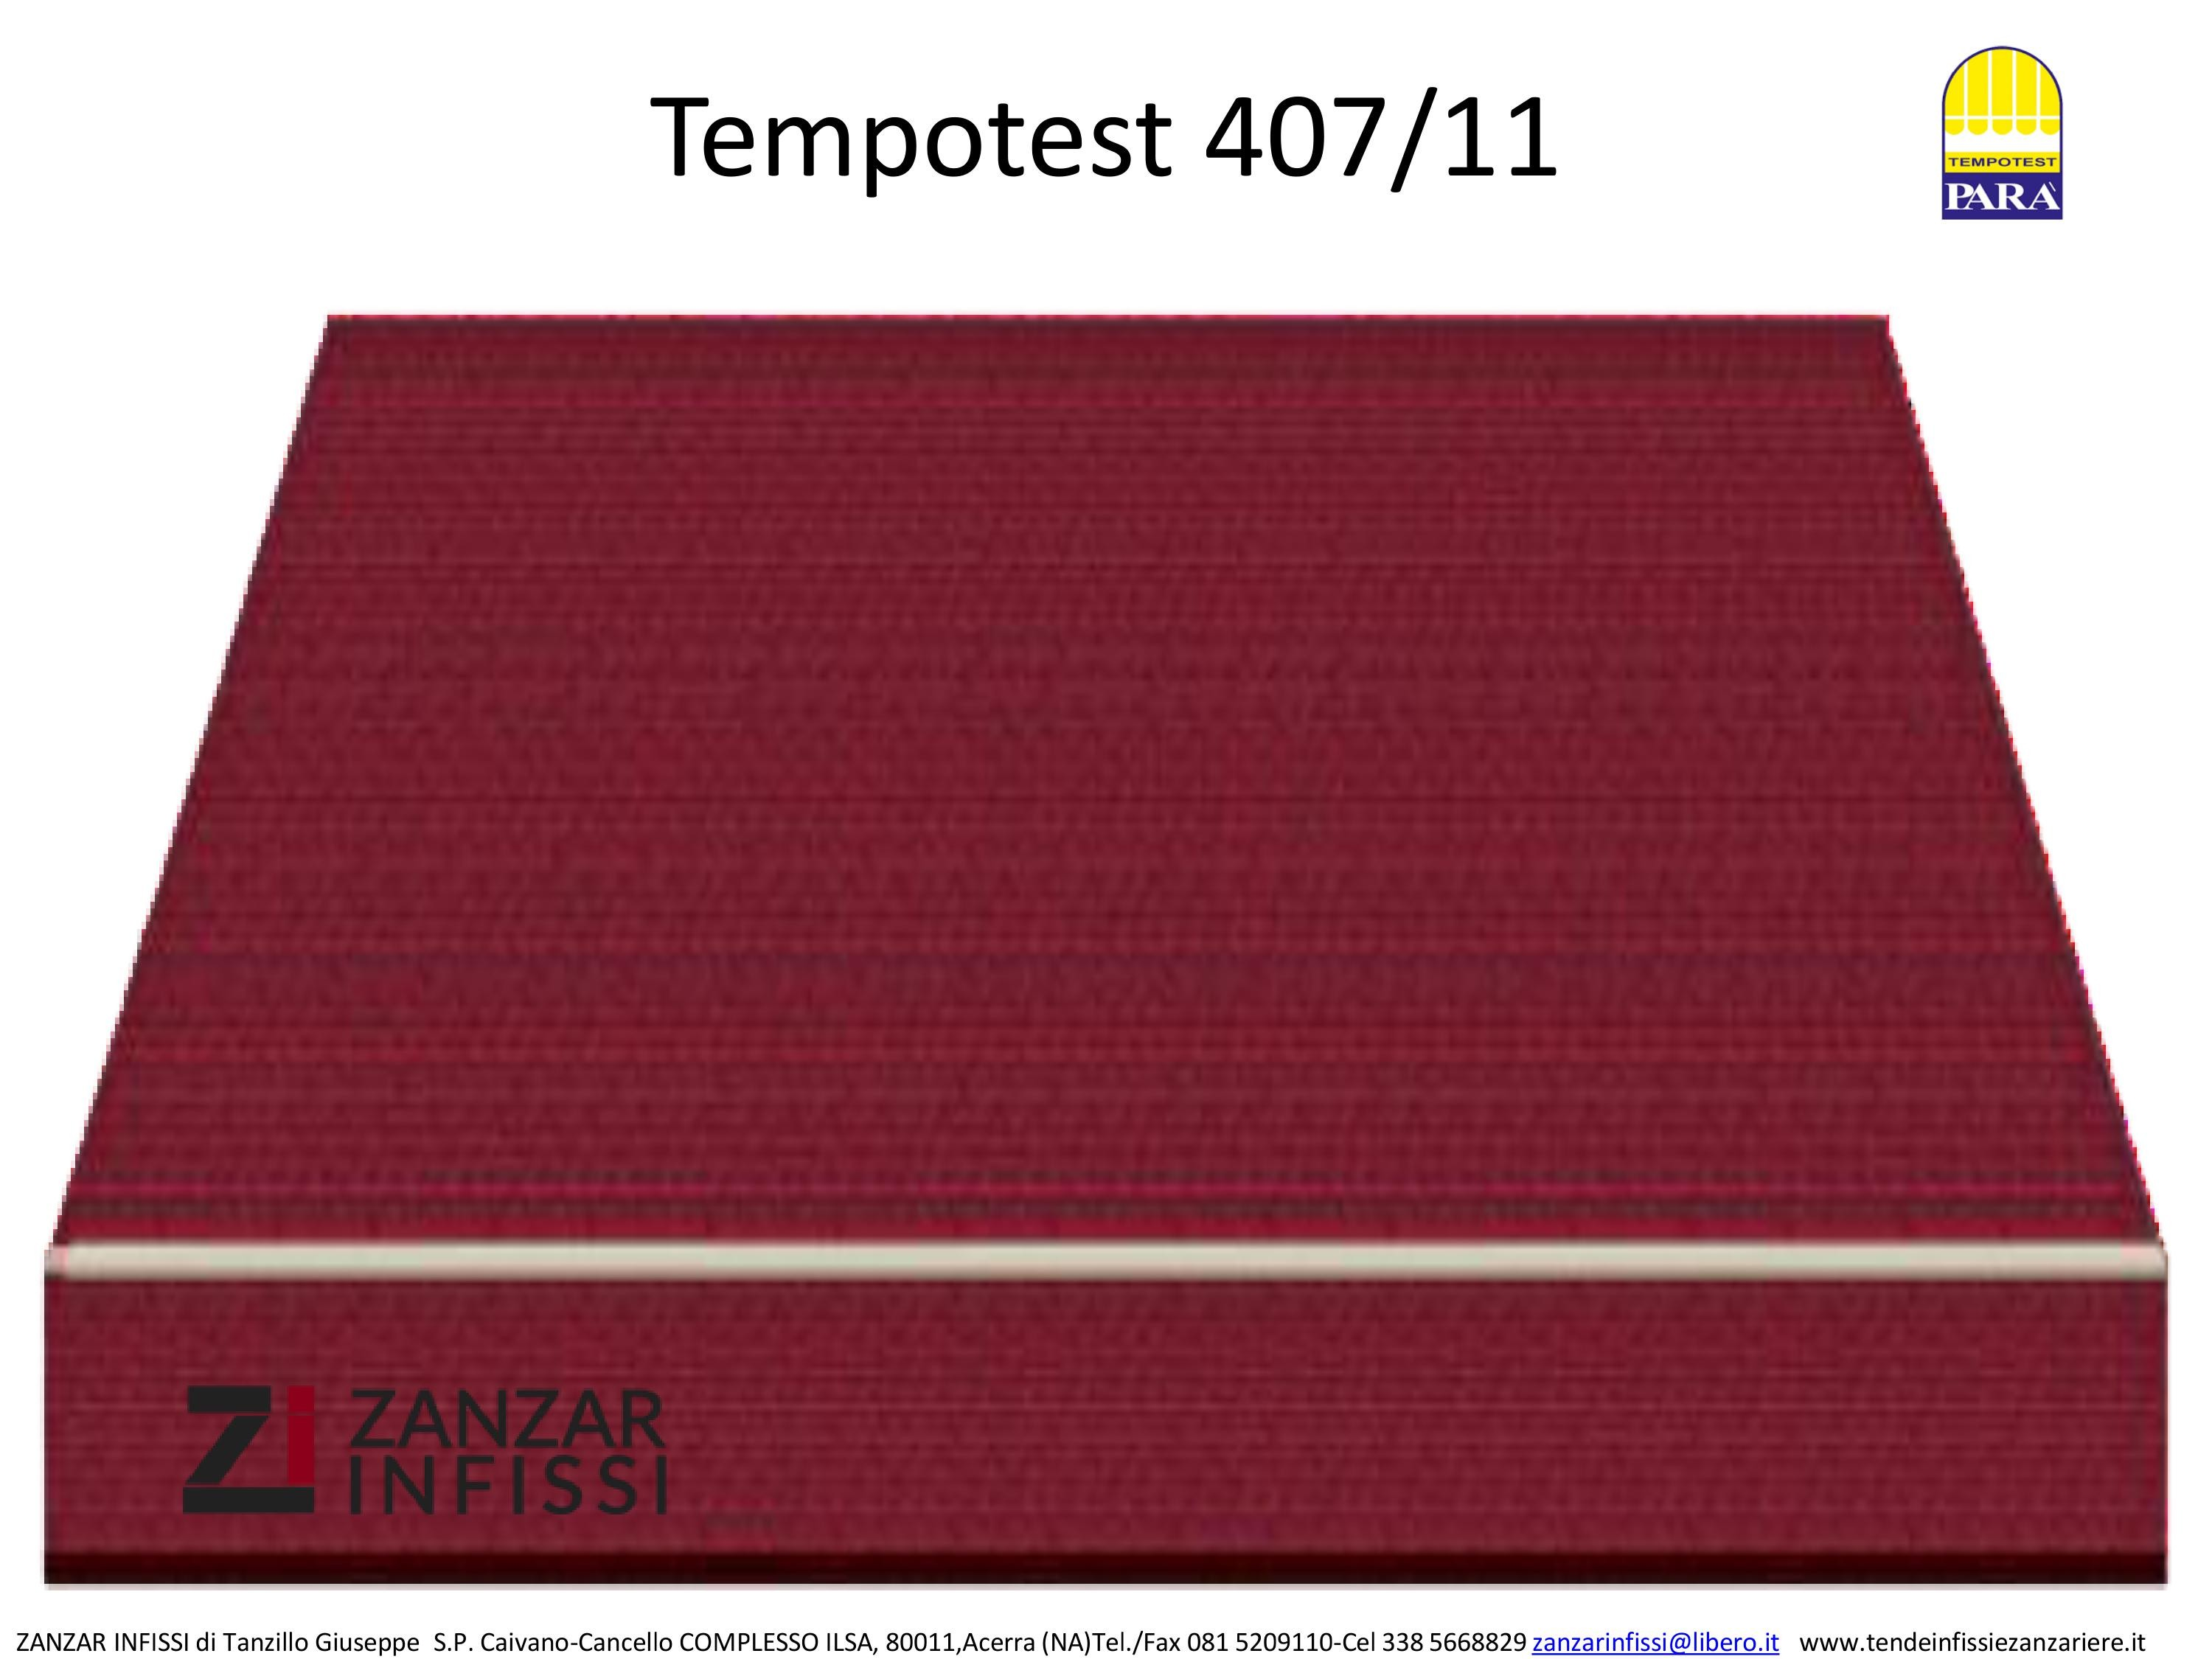 Tempotest 407/11